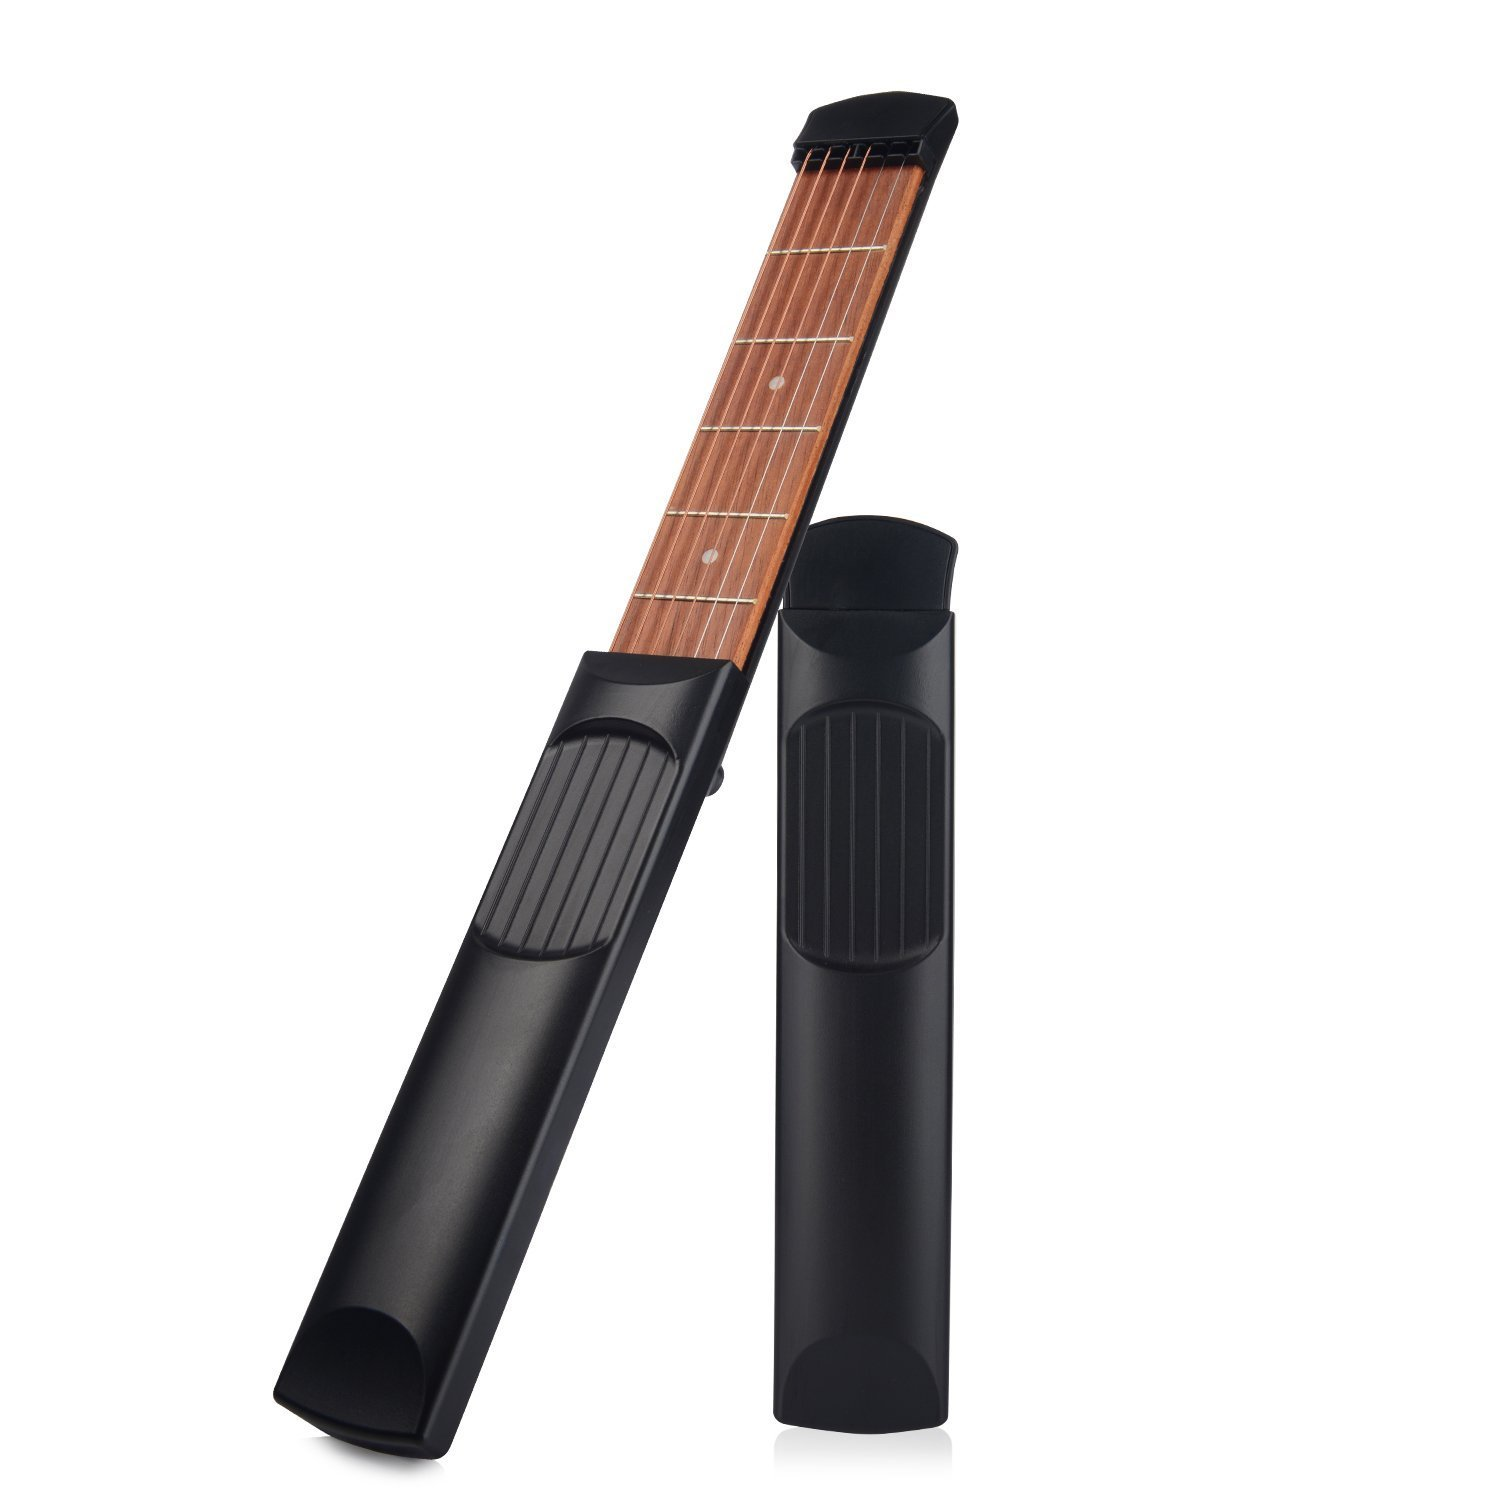 Nanagogo ZH-02Pocket Guitar Practice Tool Portable Chord Trainer Guitar Finger Exercise & Chords Practice Tool 6 String 6 Fret Black.